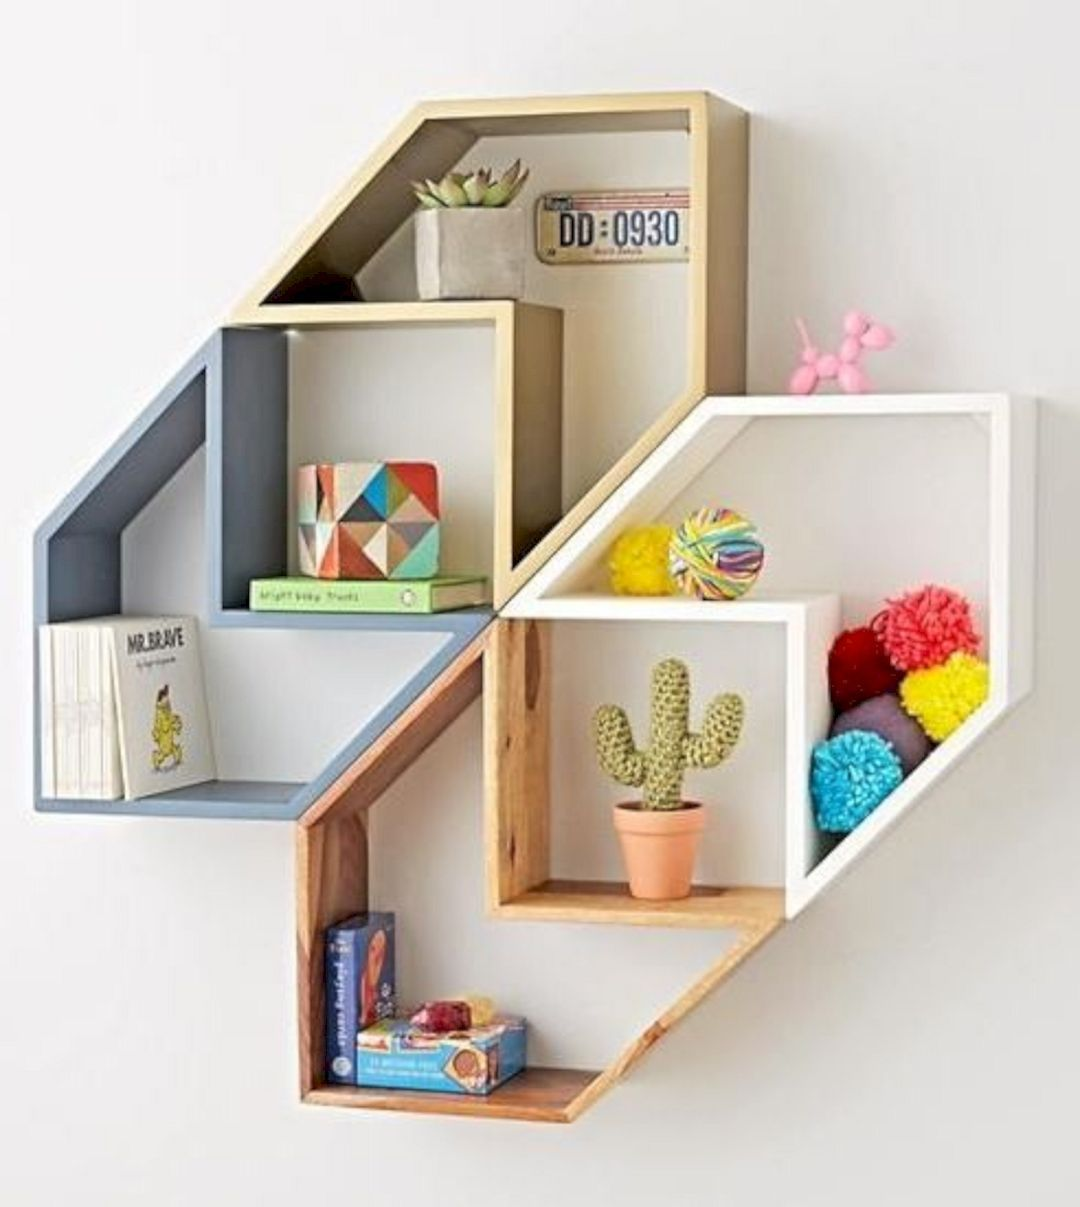 Etonnant Arrow Wall Shelf To A More Stylish And Organized Home. The Unique Design  Lets You Combine Multiple Pieces To Create Your Own One Of A Kind Wall  Storage.